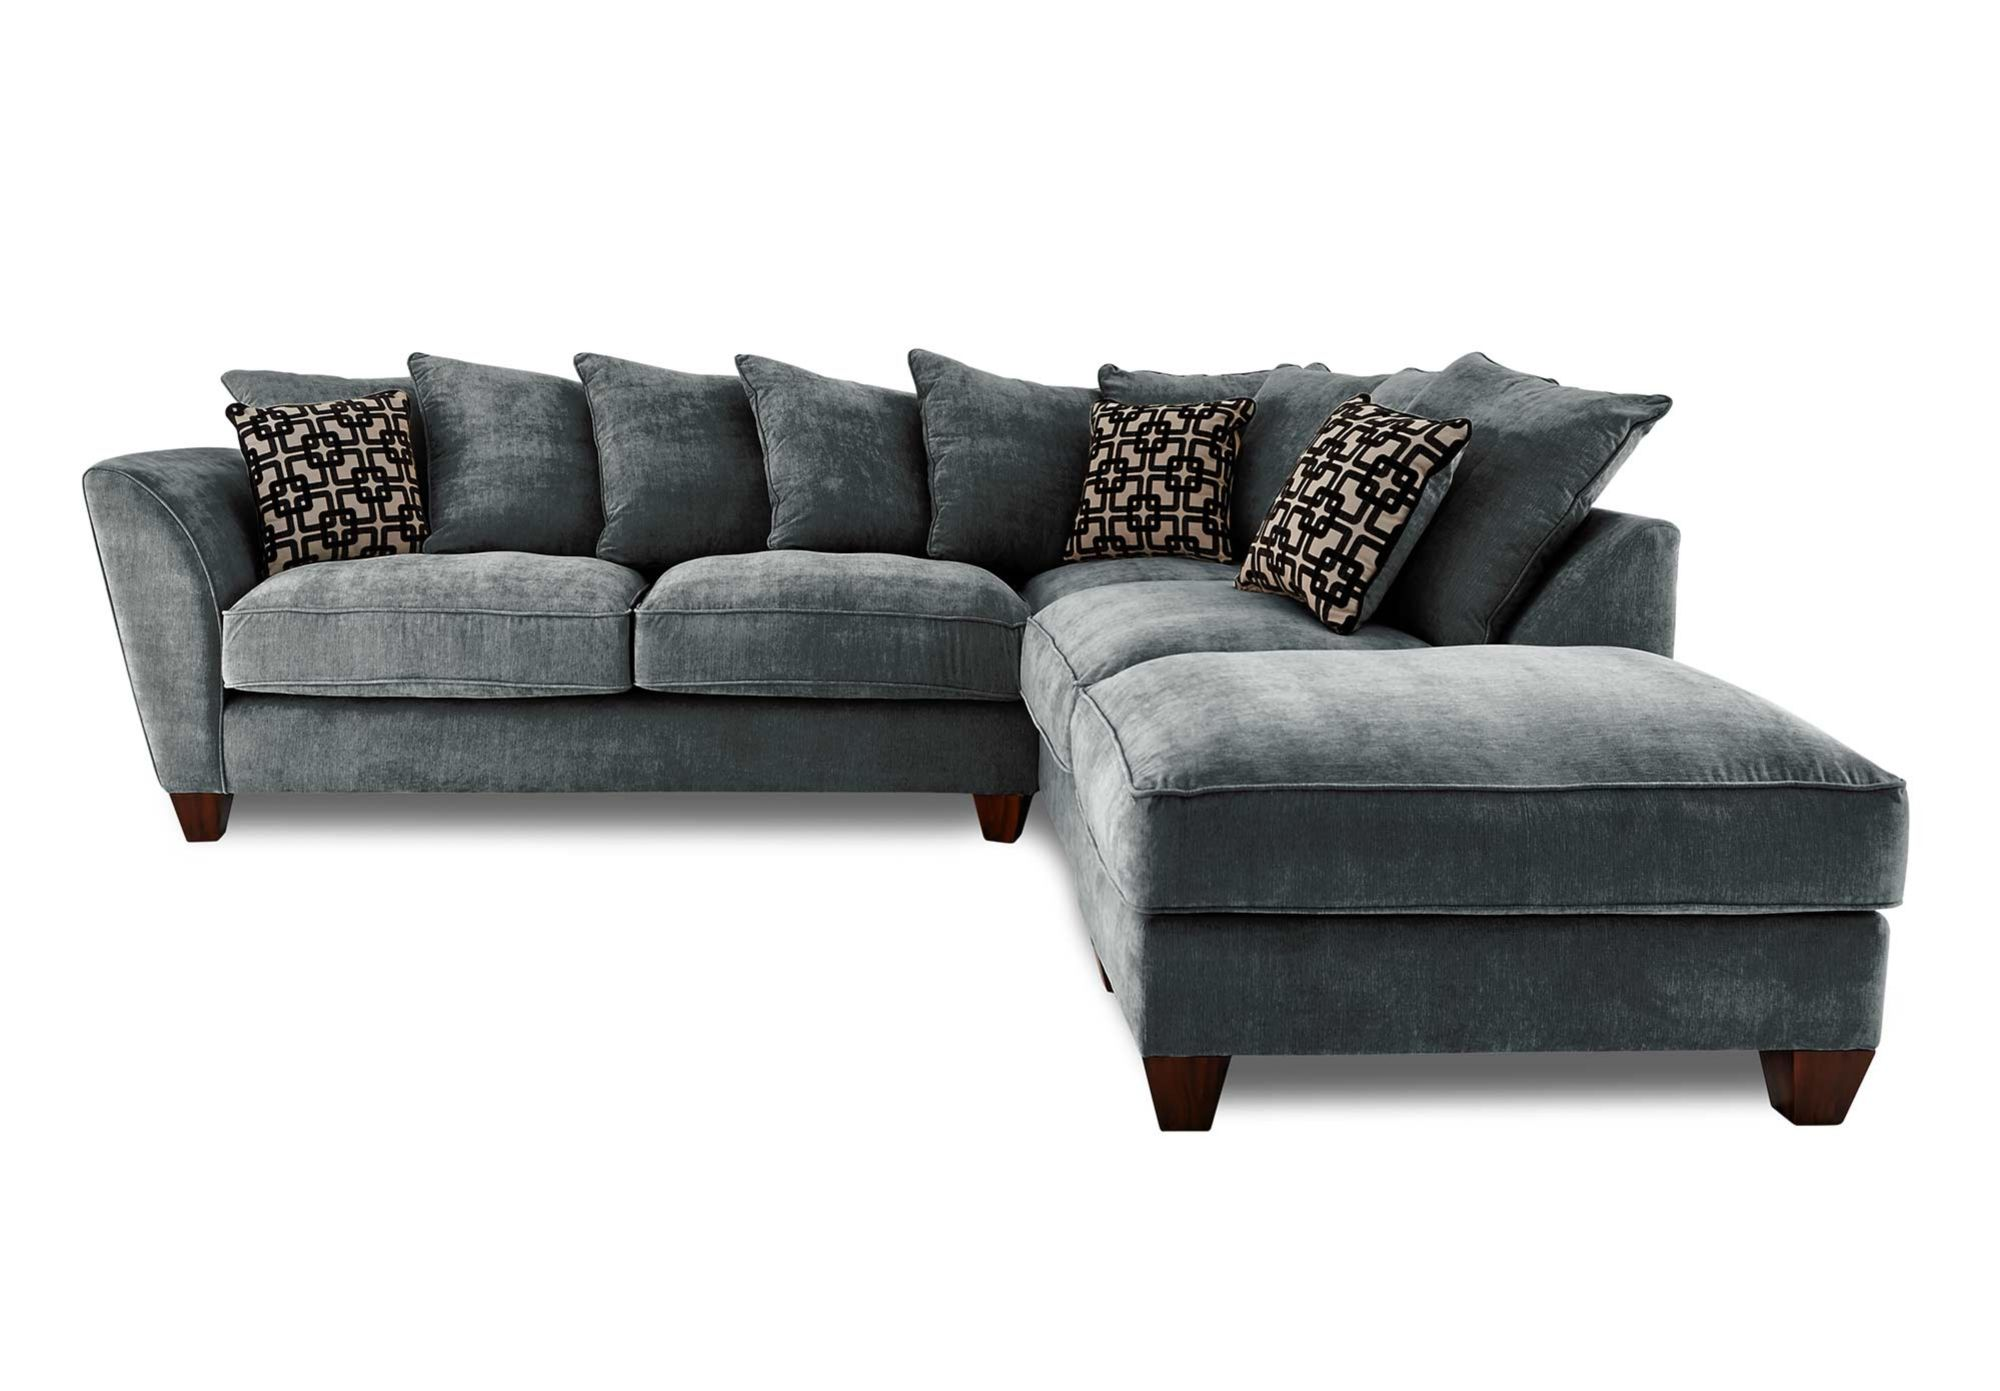 Cheap Sectional Sofas RHF Scatter Back Corner Sofa Tangier Gorgeous Living Room Furniture from Furniture Village